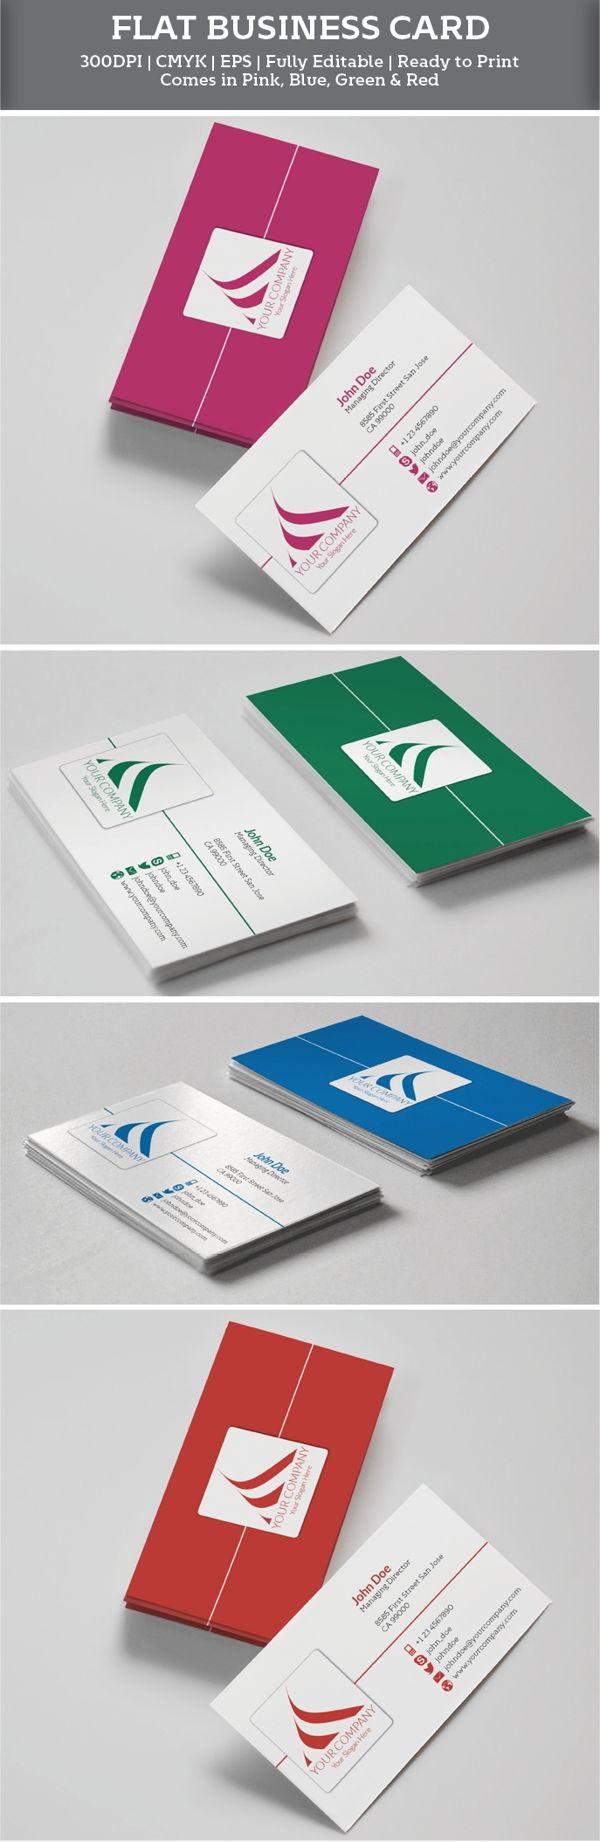 181 best free business cards images on pinterest free business free flat business cards reheart Gallery